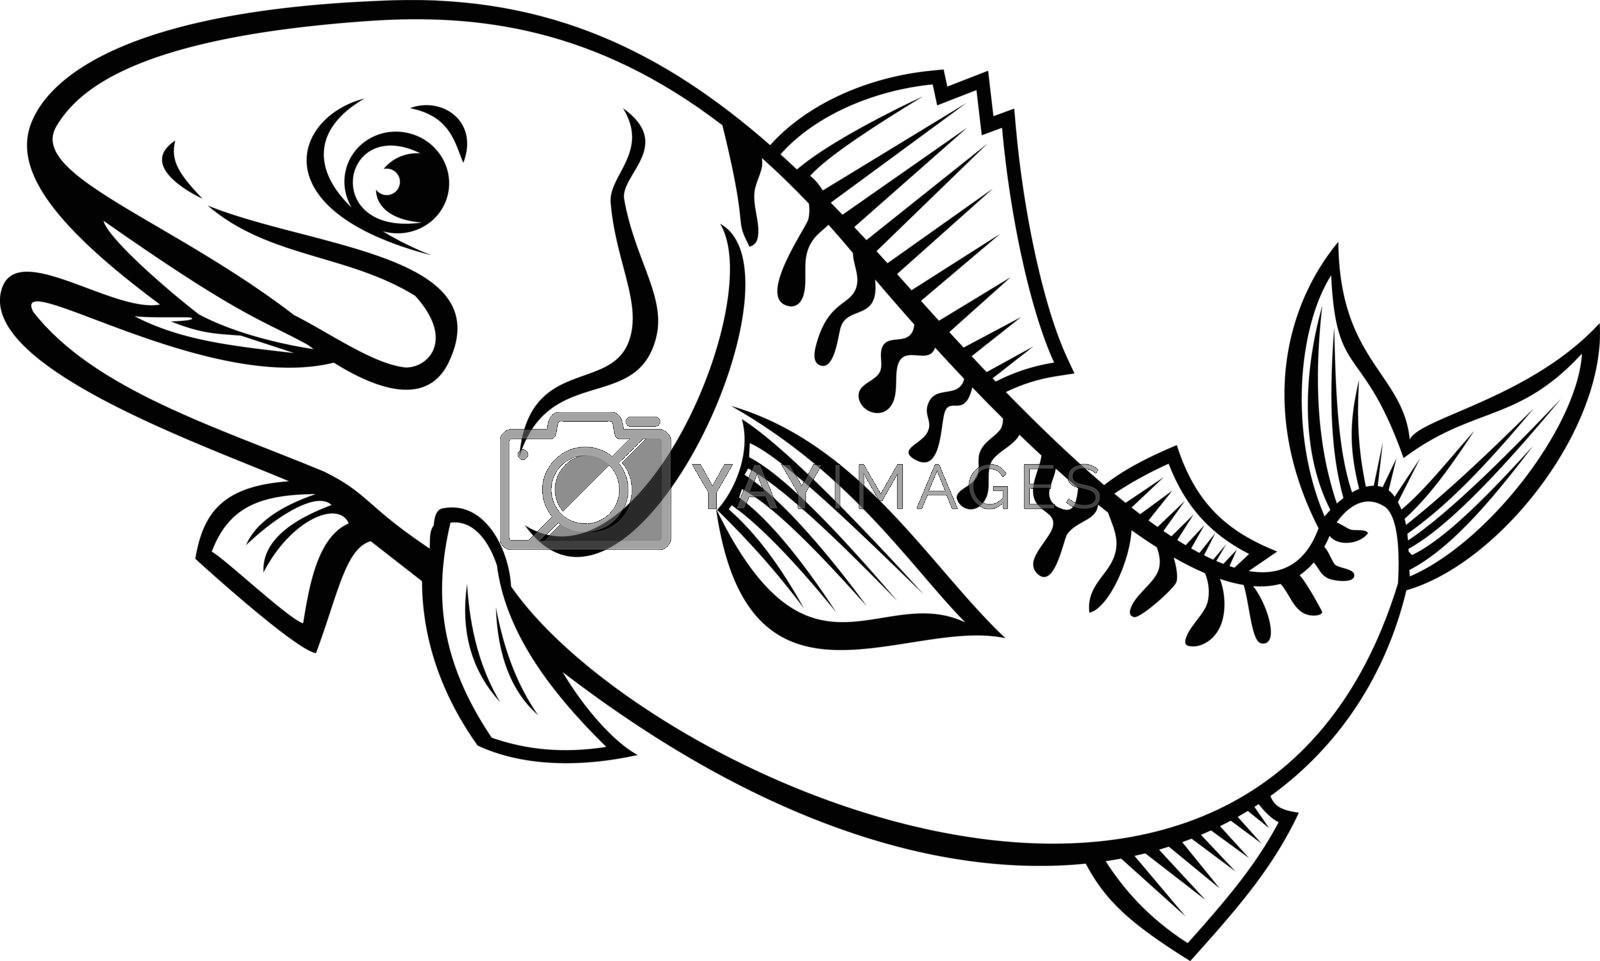 Cartoon style illustration of an Atlantic mackerel, Boston mackerel or Norwegian mackerel, a fish species found in the temperate waters jumping up on isolated background done in black and white.